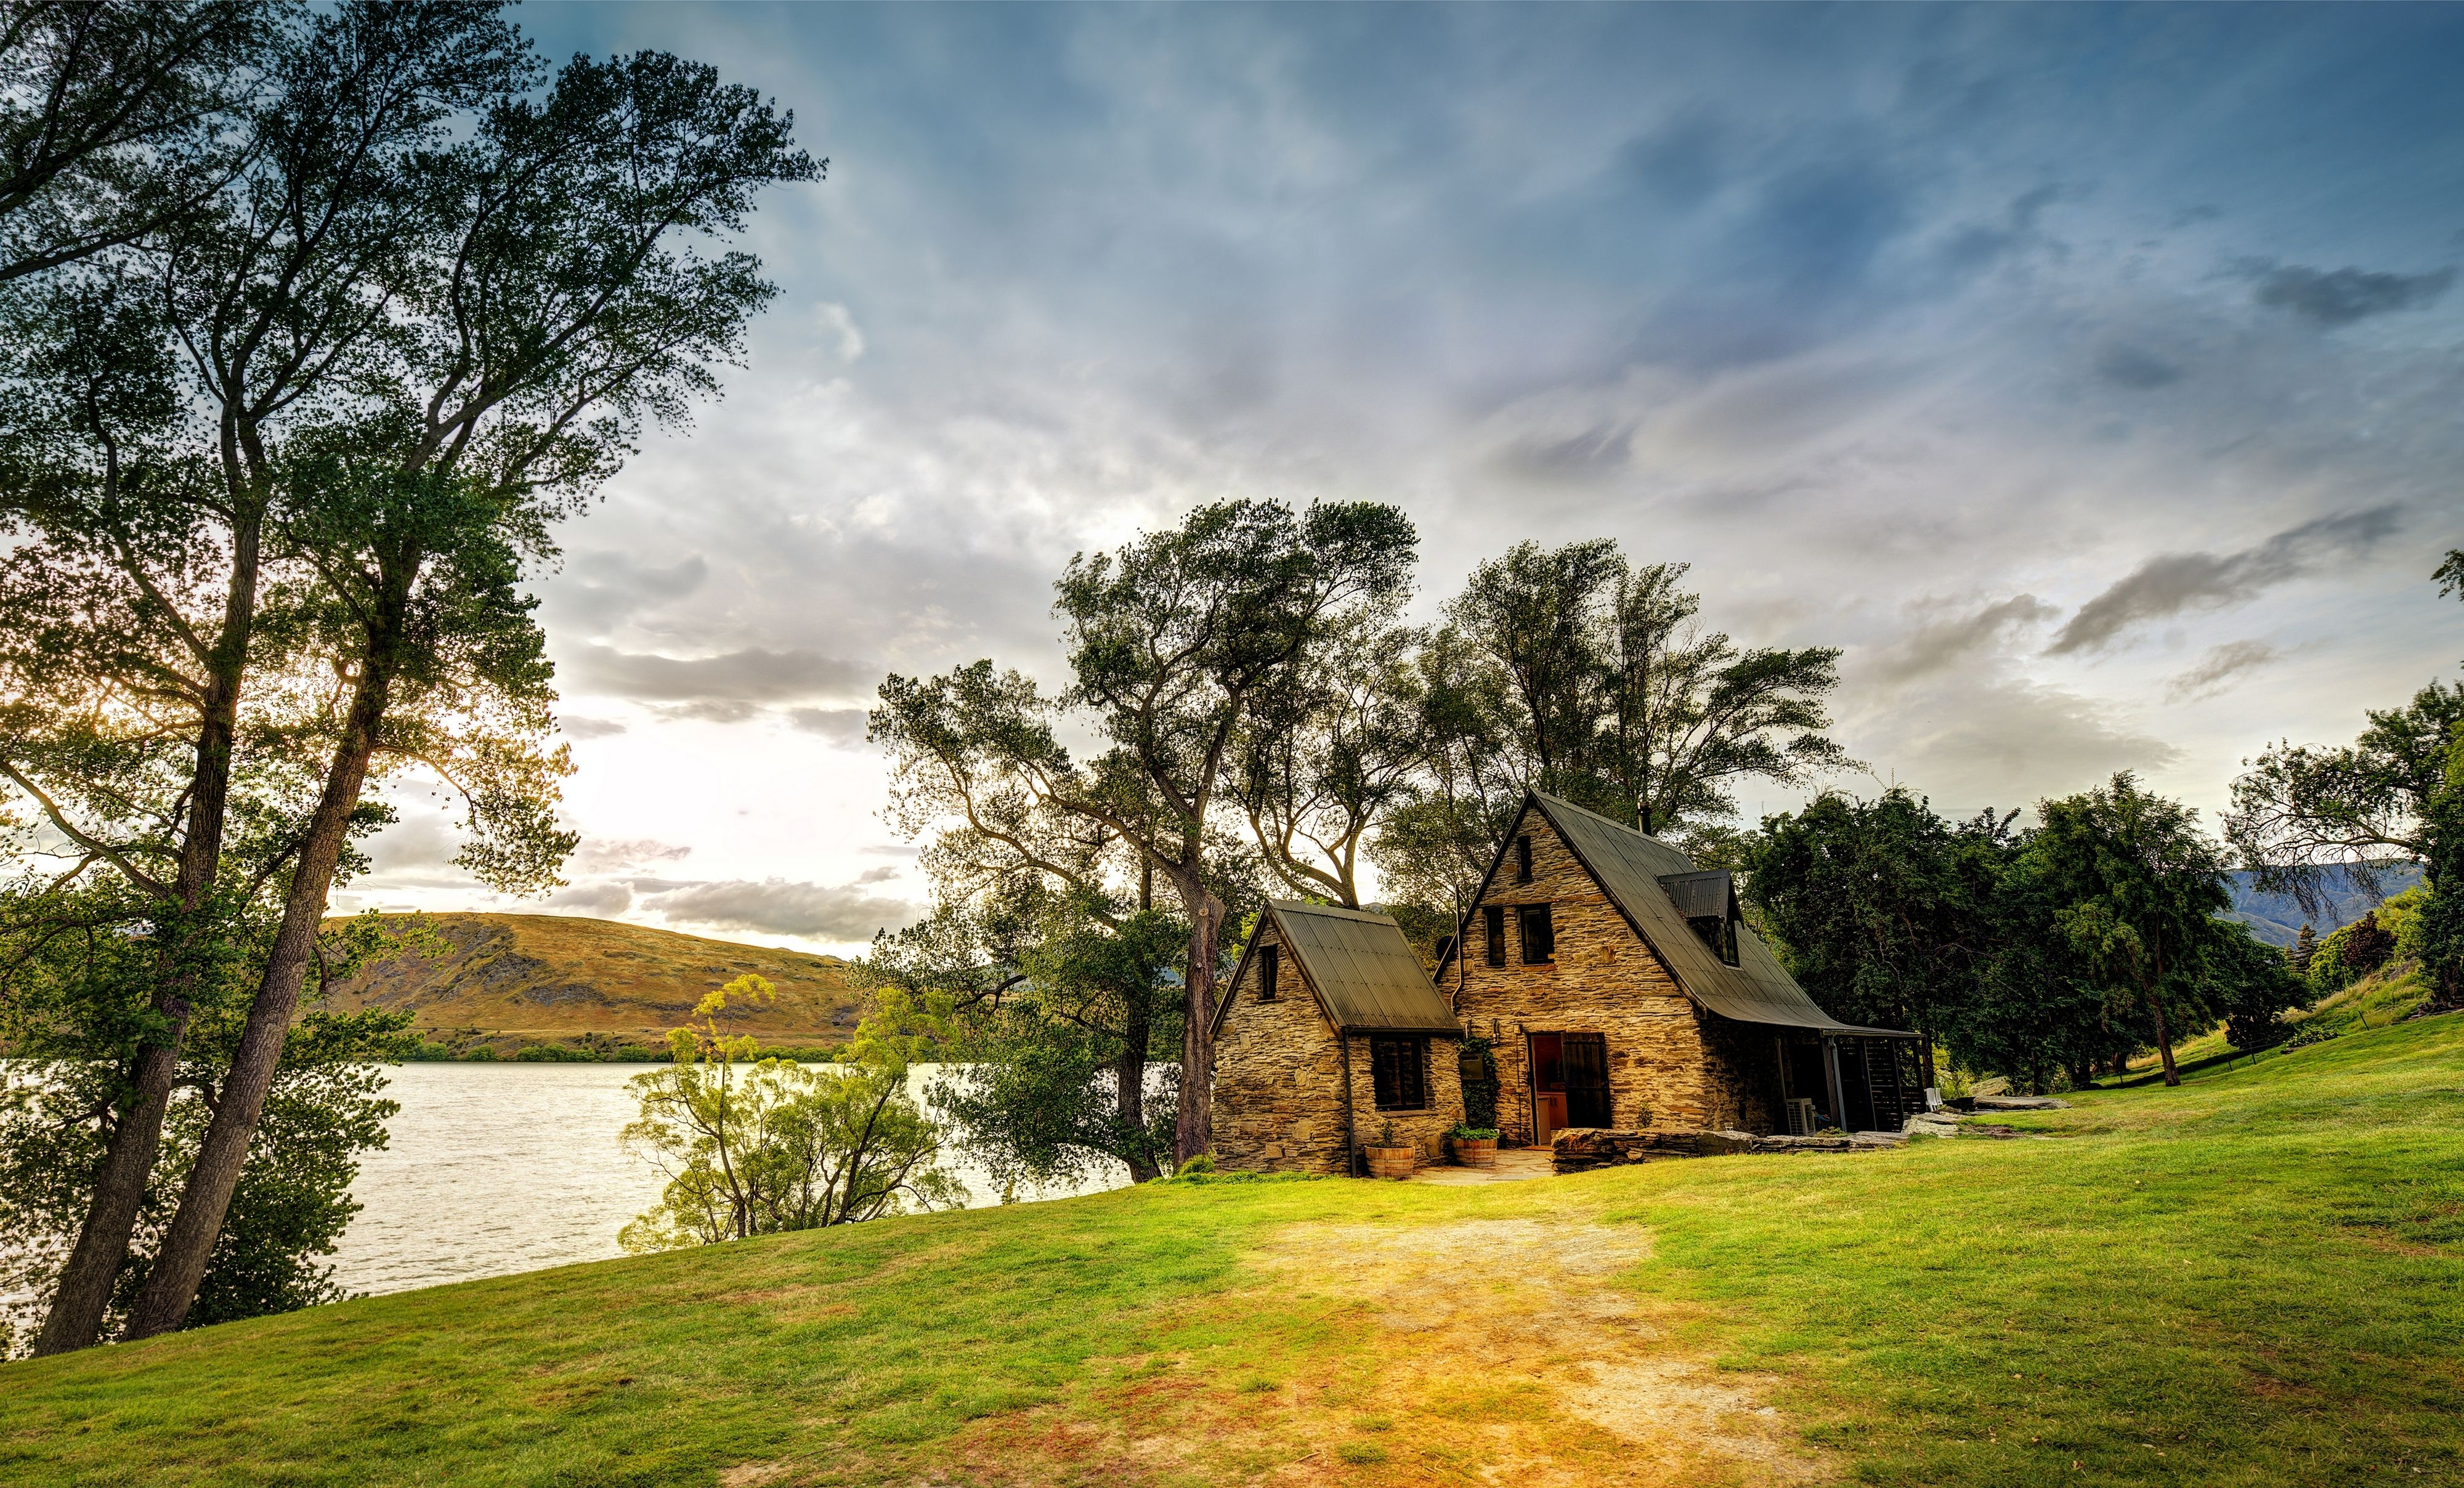 New zealand house lake trees landscape wallpaper for Classic house landscape